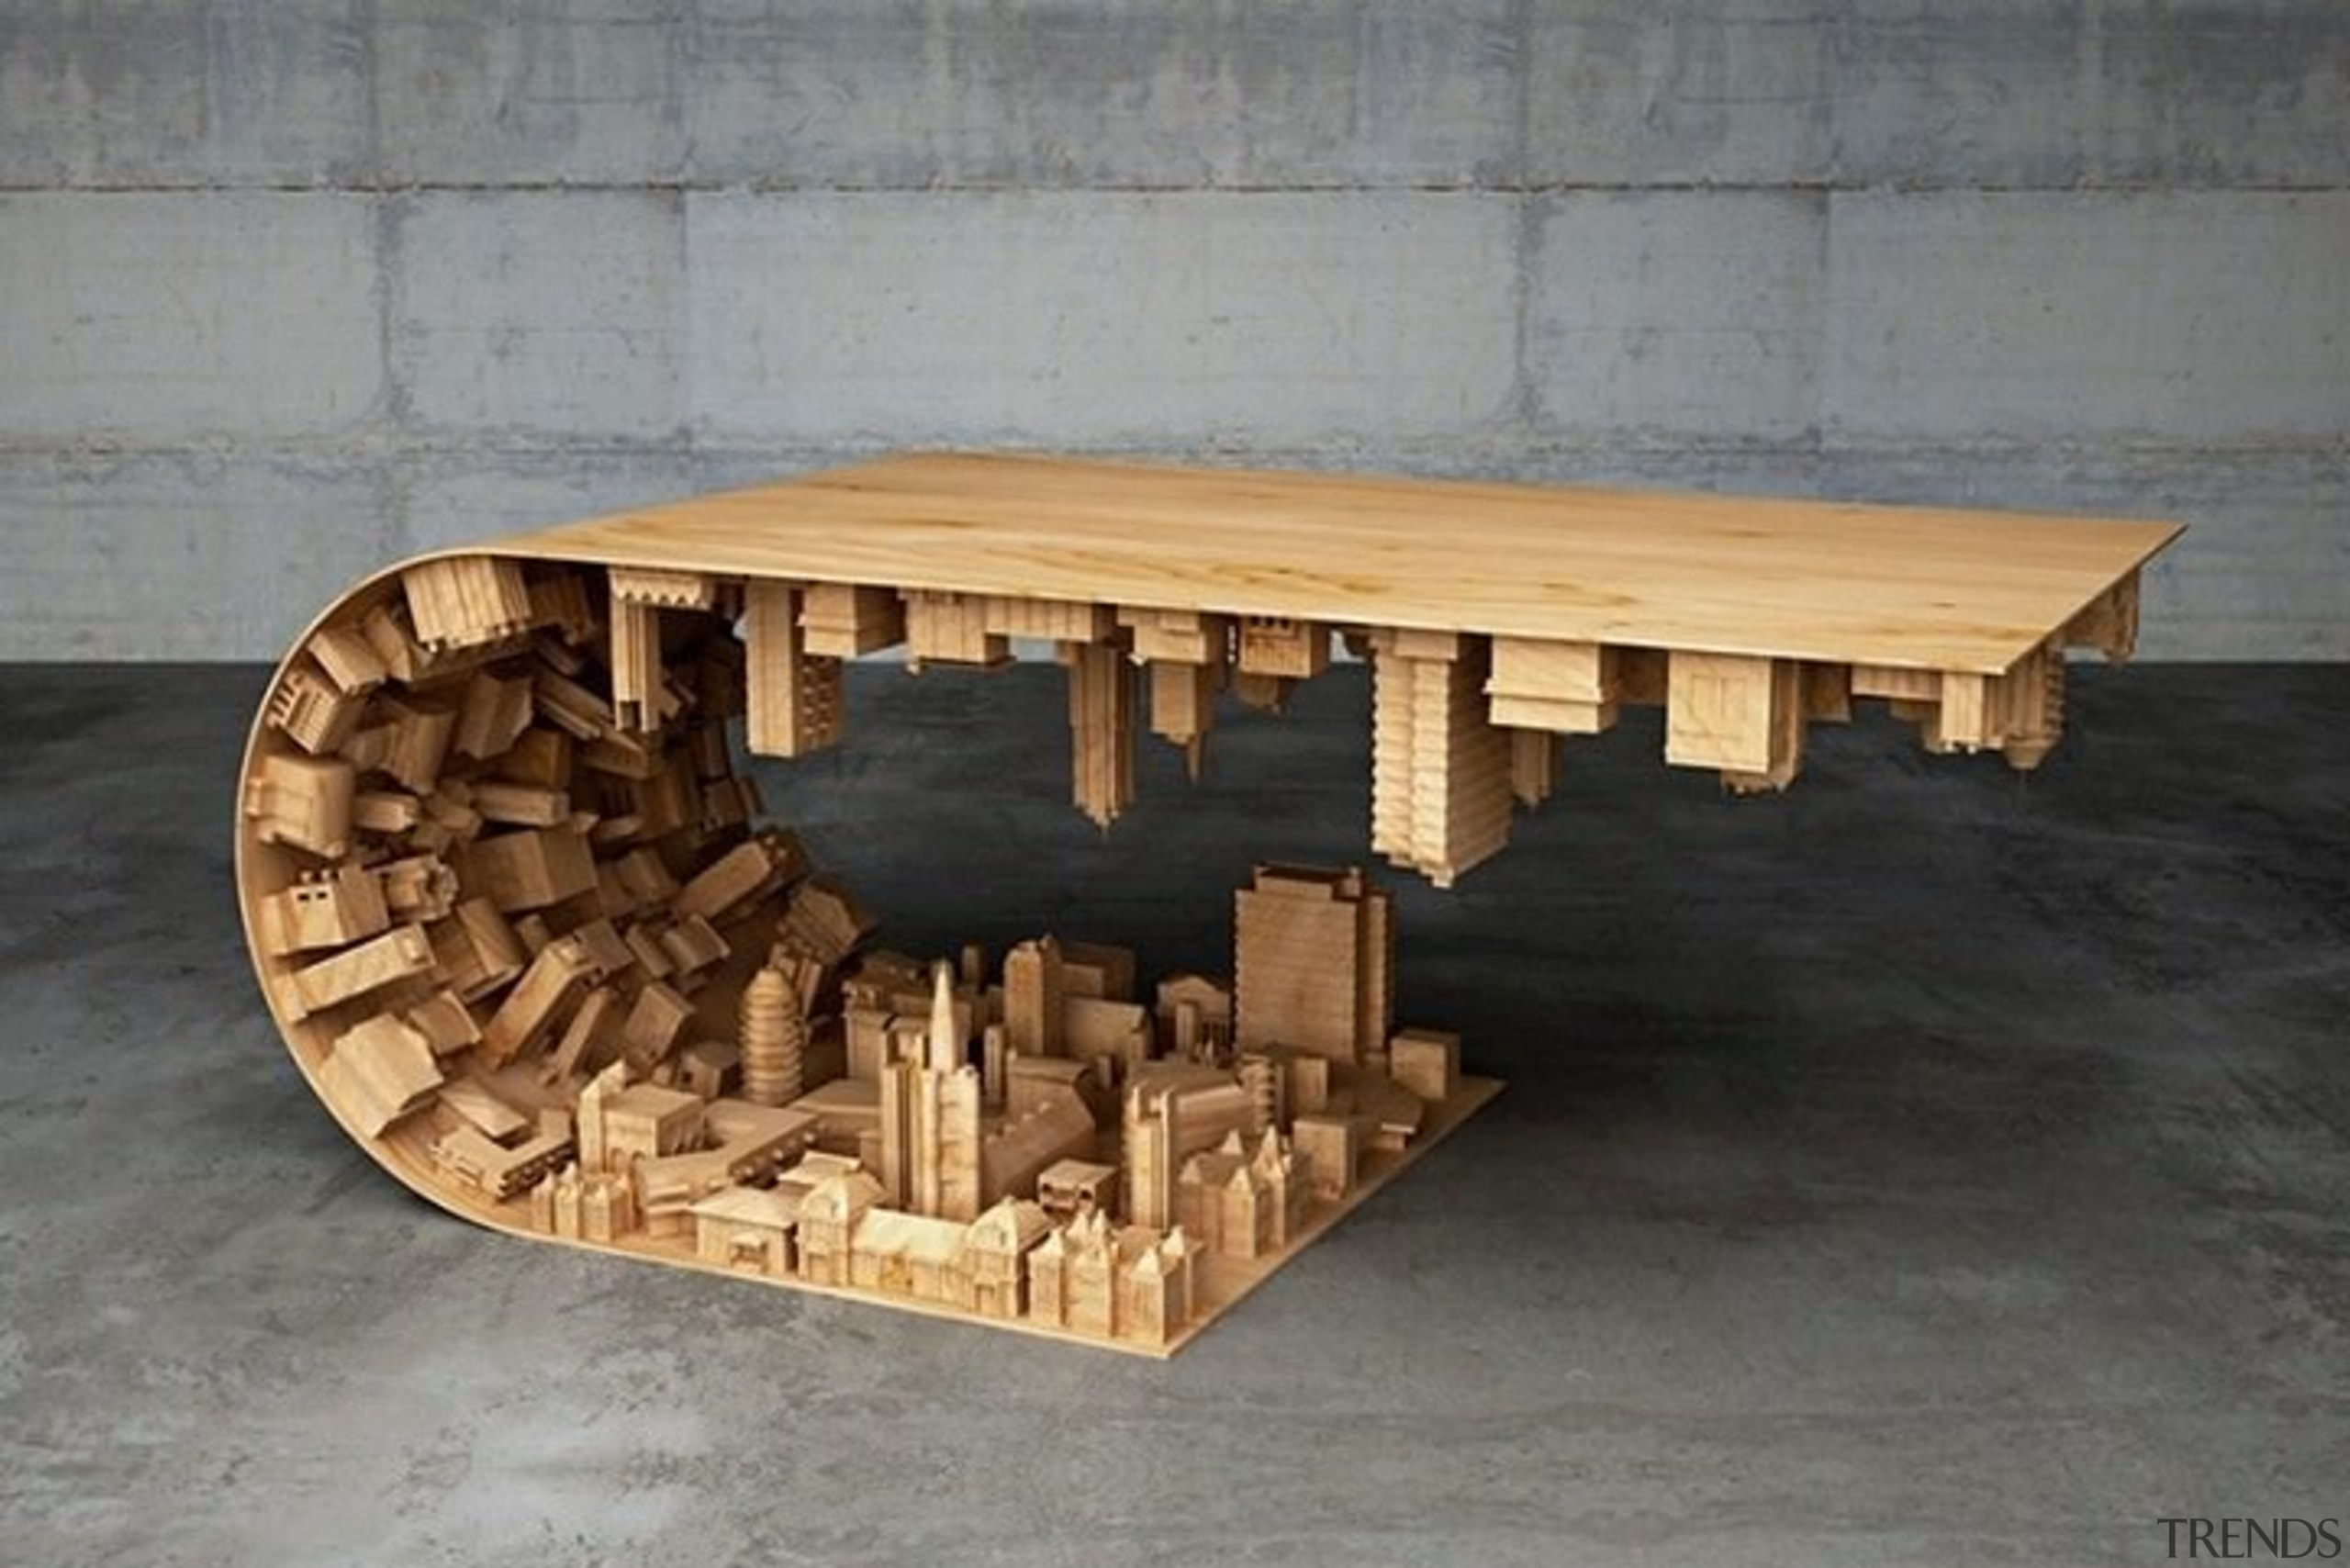 The wave city coffee table - The wave furniture, product design, table, wood, gray